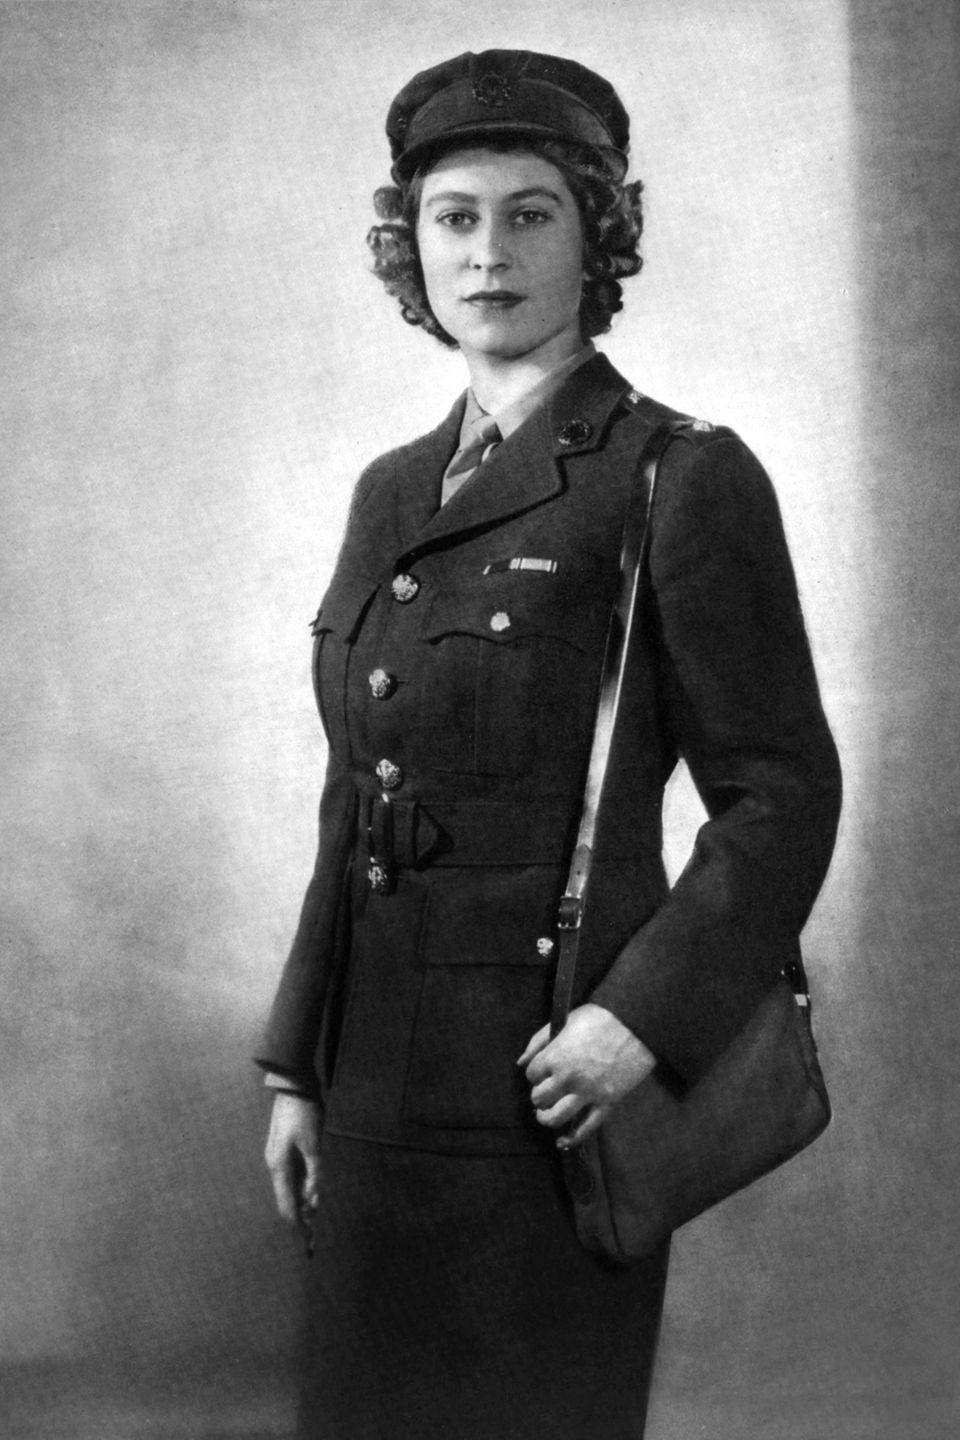 <p>Princess Elizabeth was photographed in her British Army uniform. At the time of the picture, she was a second subaltern (equivalent to a second lieutenant) in the Auxiliary Territorial Service (ATS) of the British Army. </p>